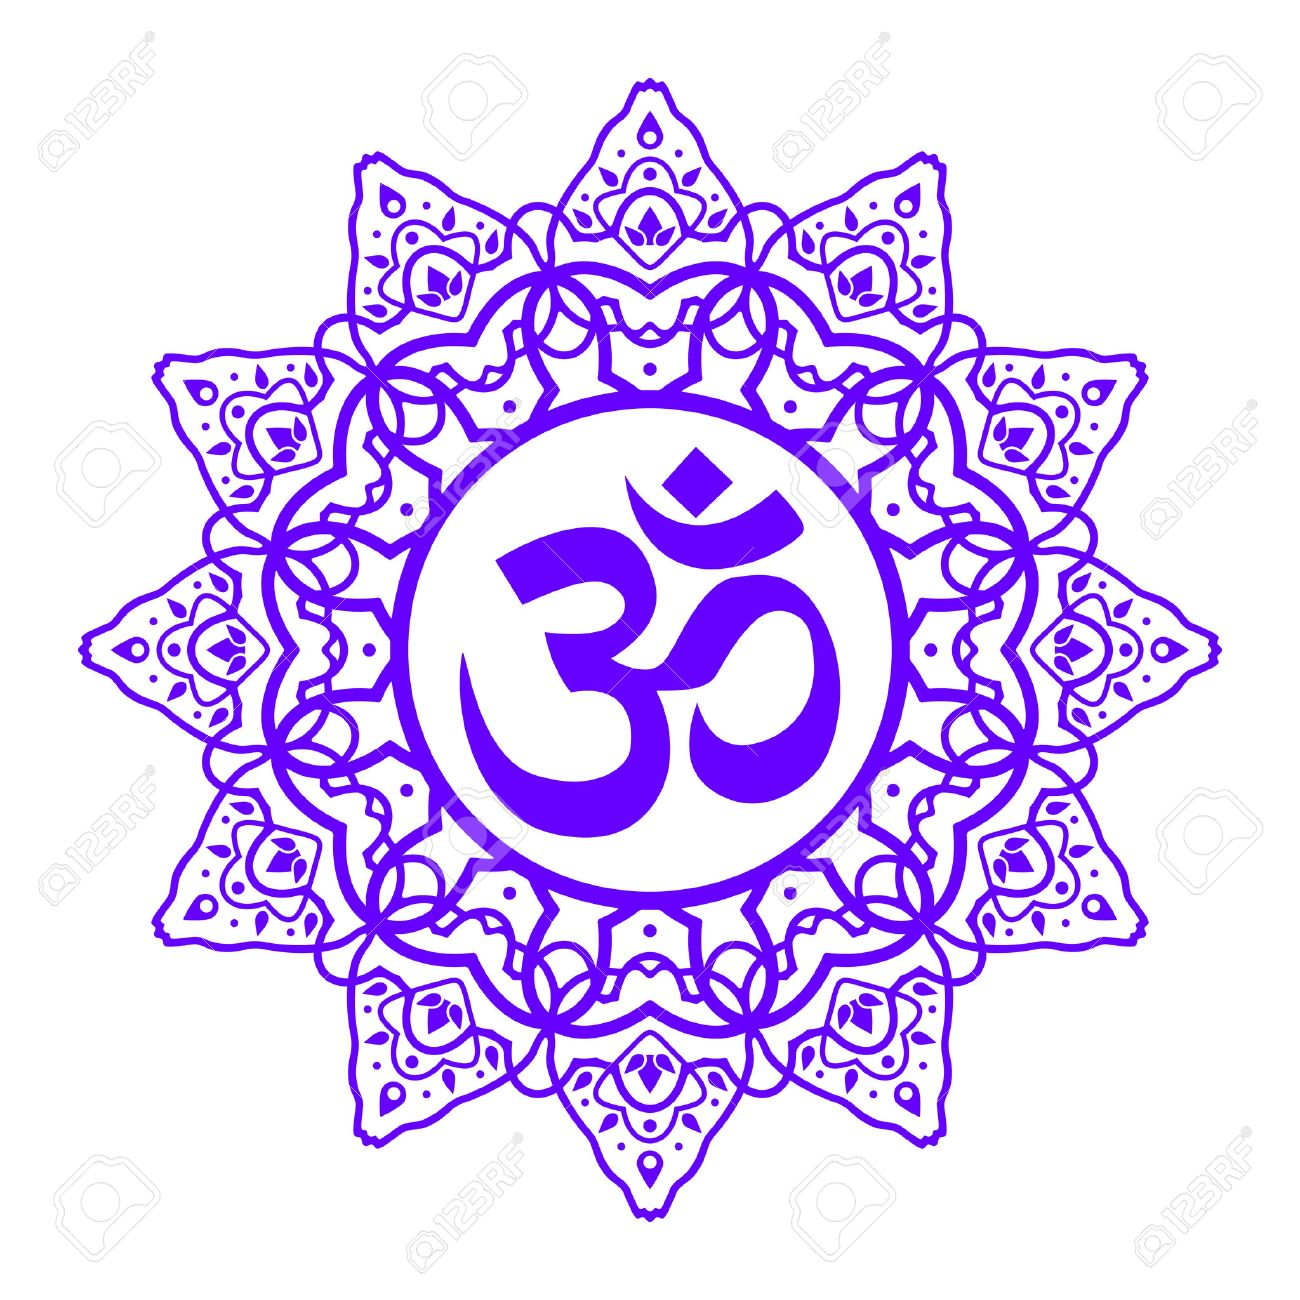 Om symbol aum sign with decorative indian ornament mandala om symbol aum sign with decorative indian ornament mandala isolated on white background buycottarizona Image collections